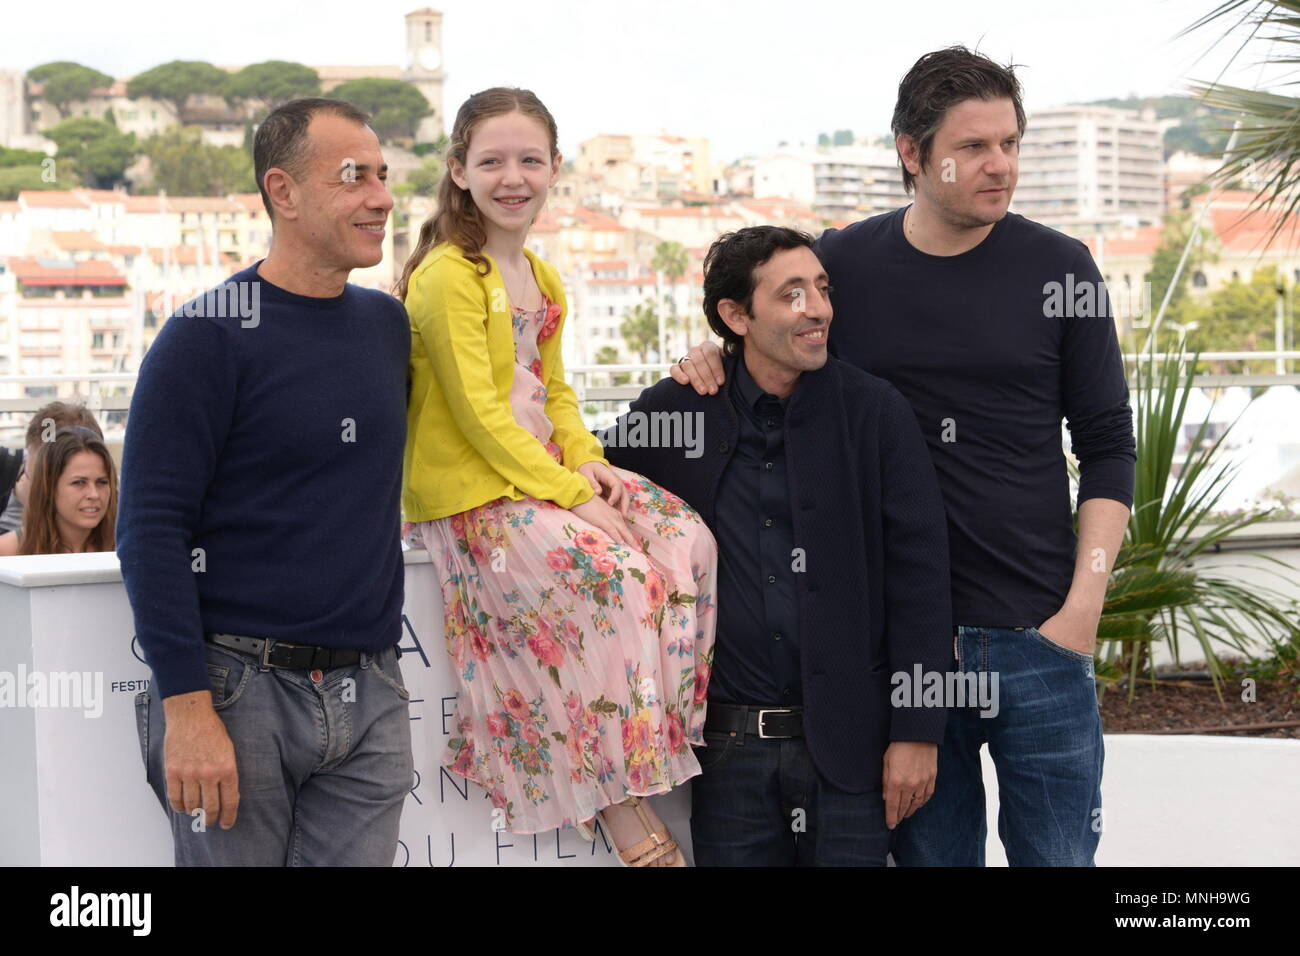 Cannes, France  17th May, 2018  CANNES, FRANCE - MAY 17